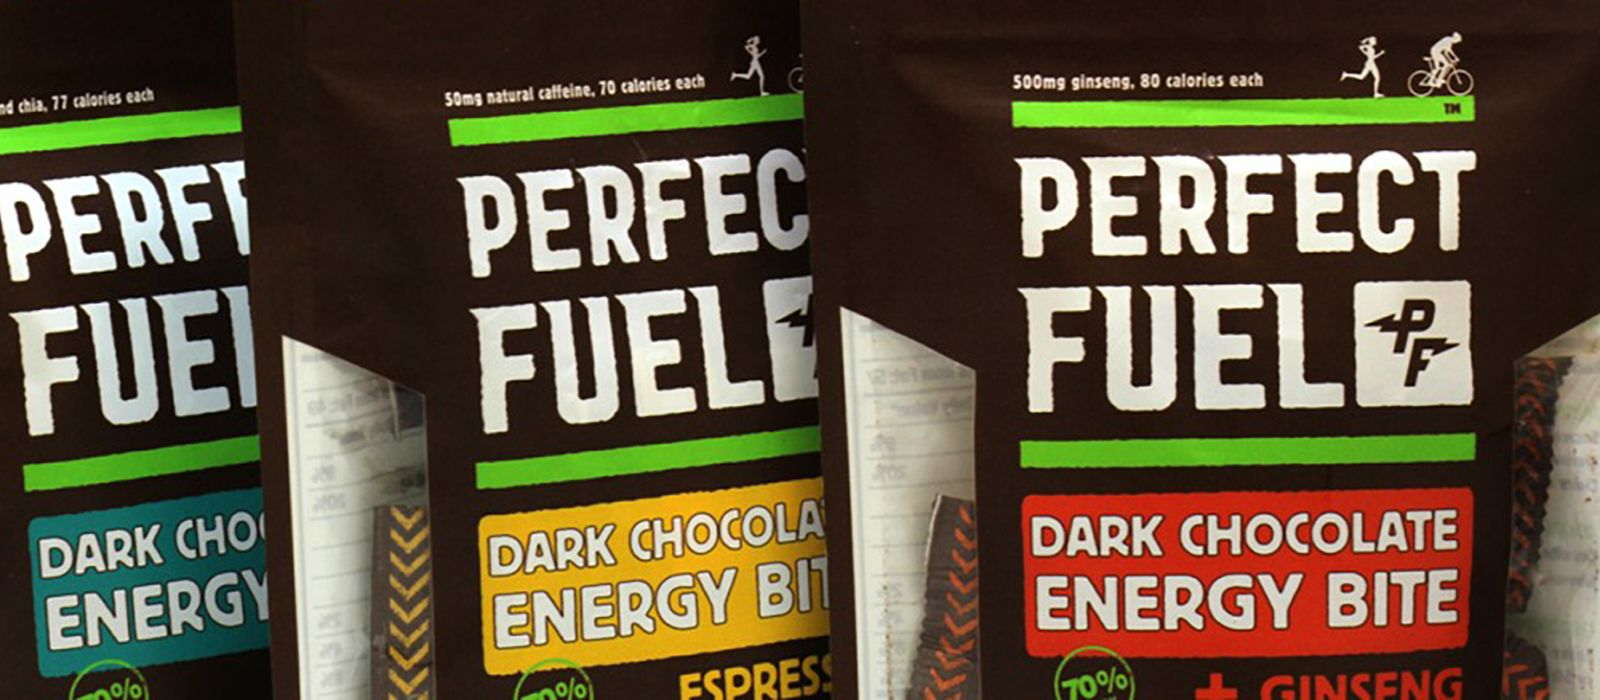 home market foods perfect fuel chia espresso ginseng dark chocolate energy bites